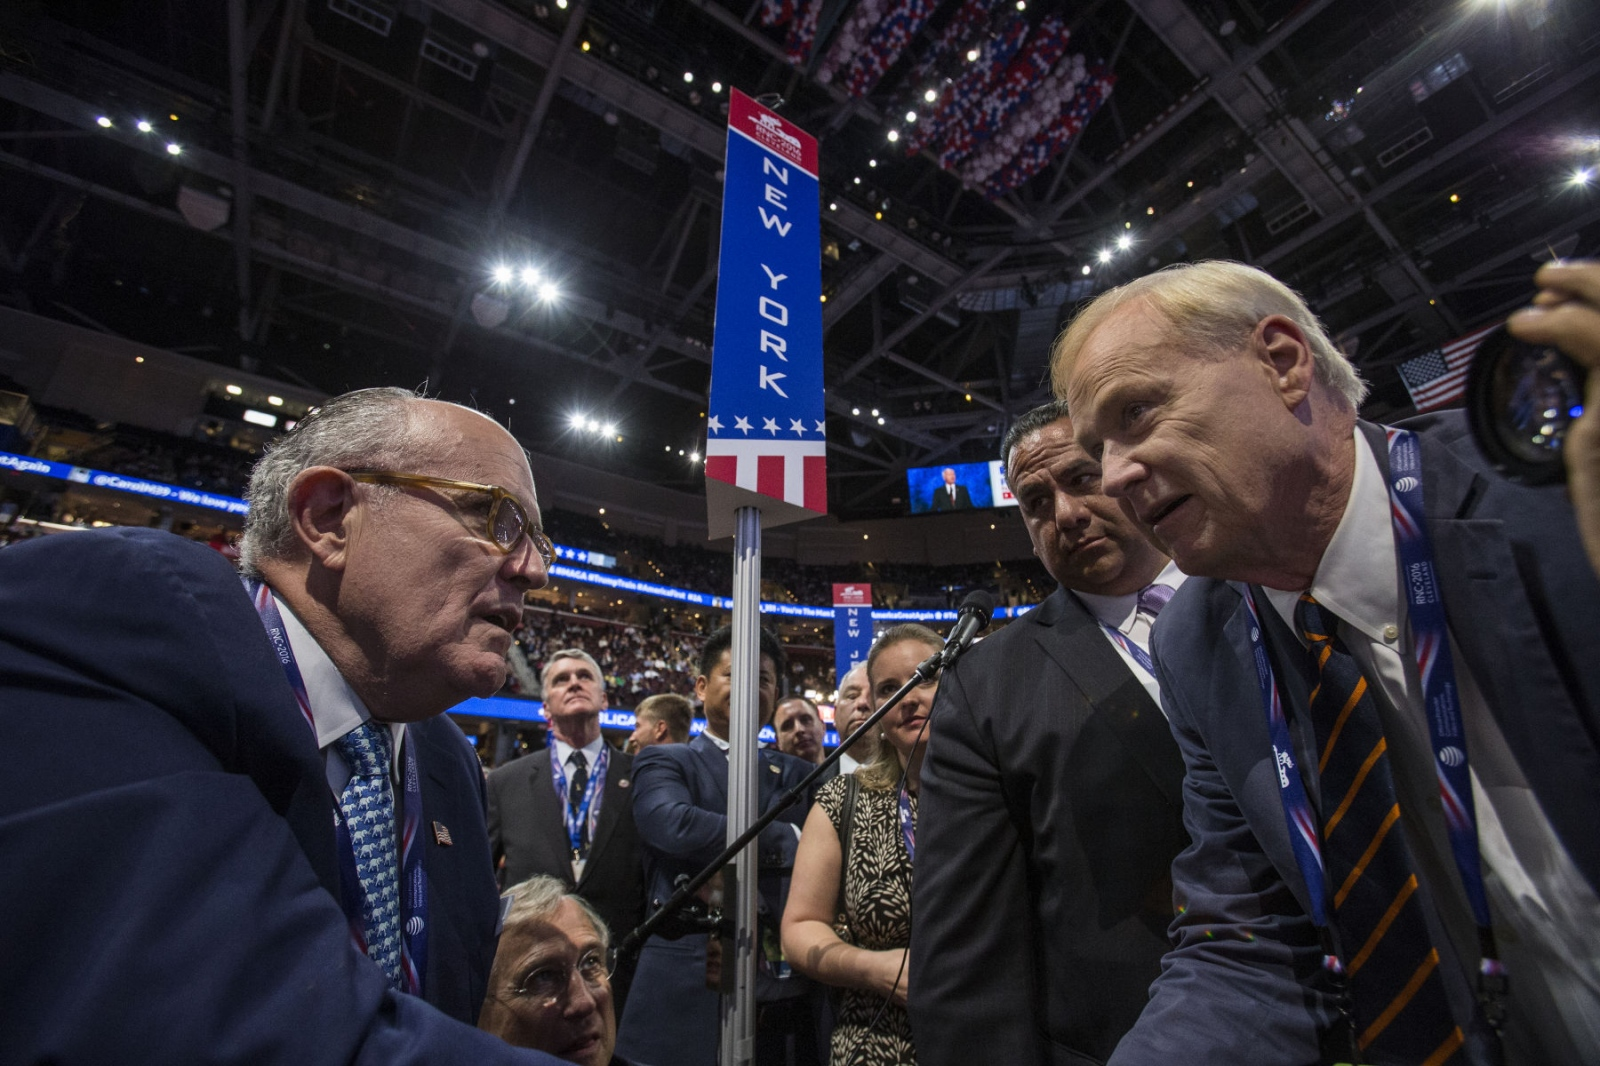 Former NYC Mayor, Rudy Giuliani talking to Chris Matthews of MSNBC, after Giuliani gave his Islamophobic speech at the Republican National Convention. July 20, 2016 (Kevin C Downs).